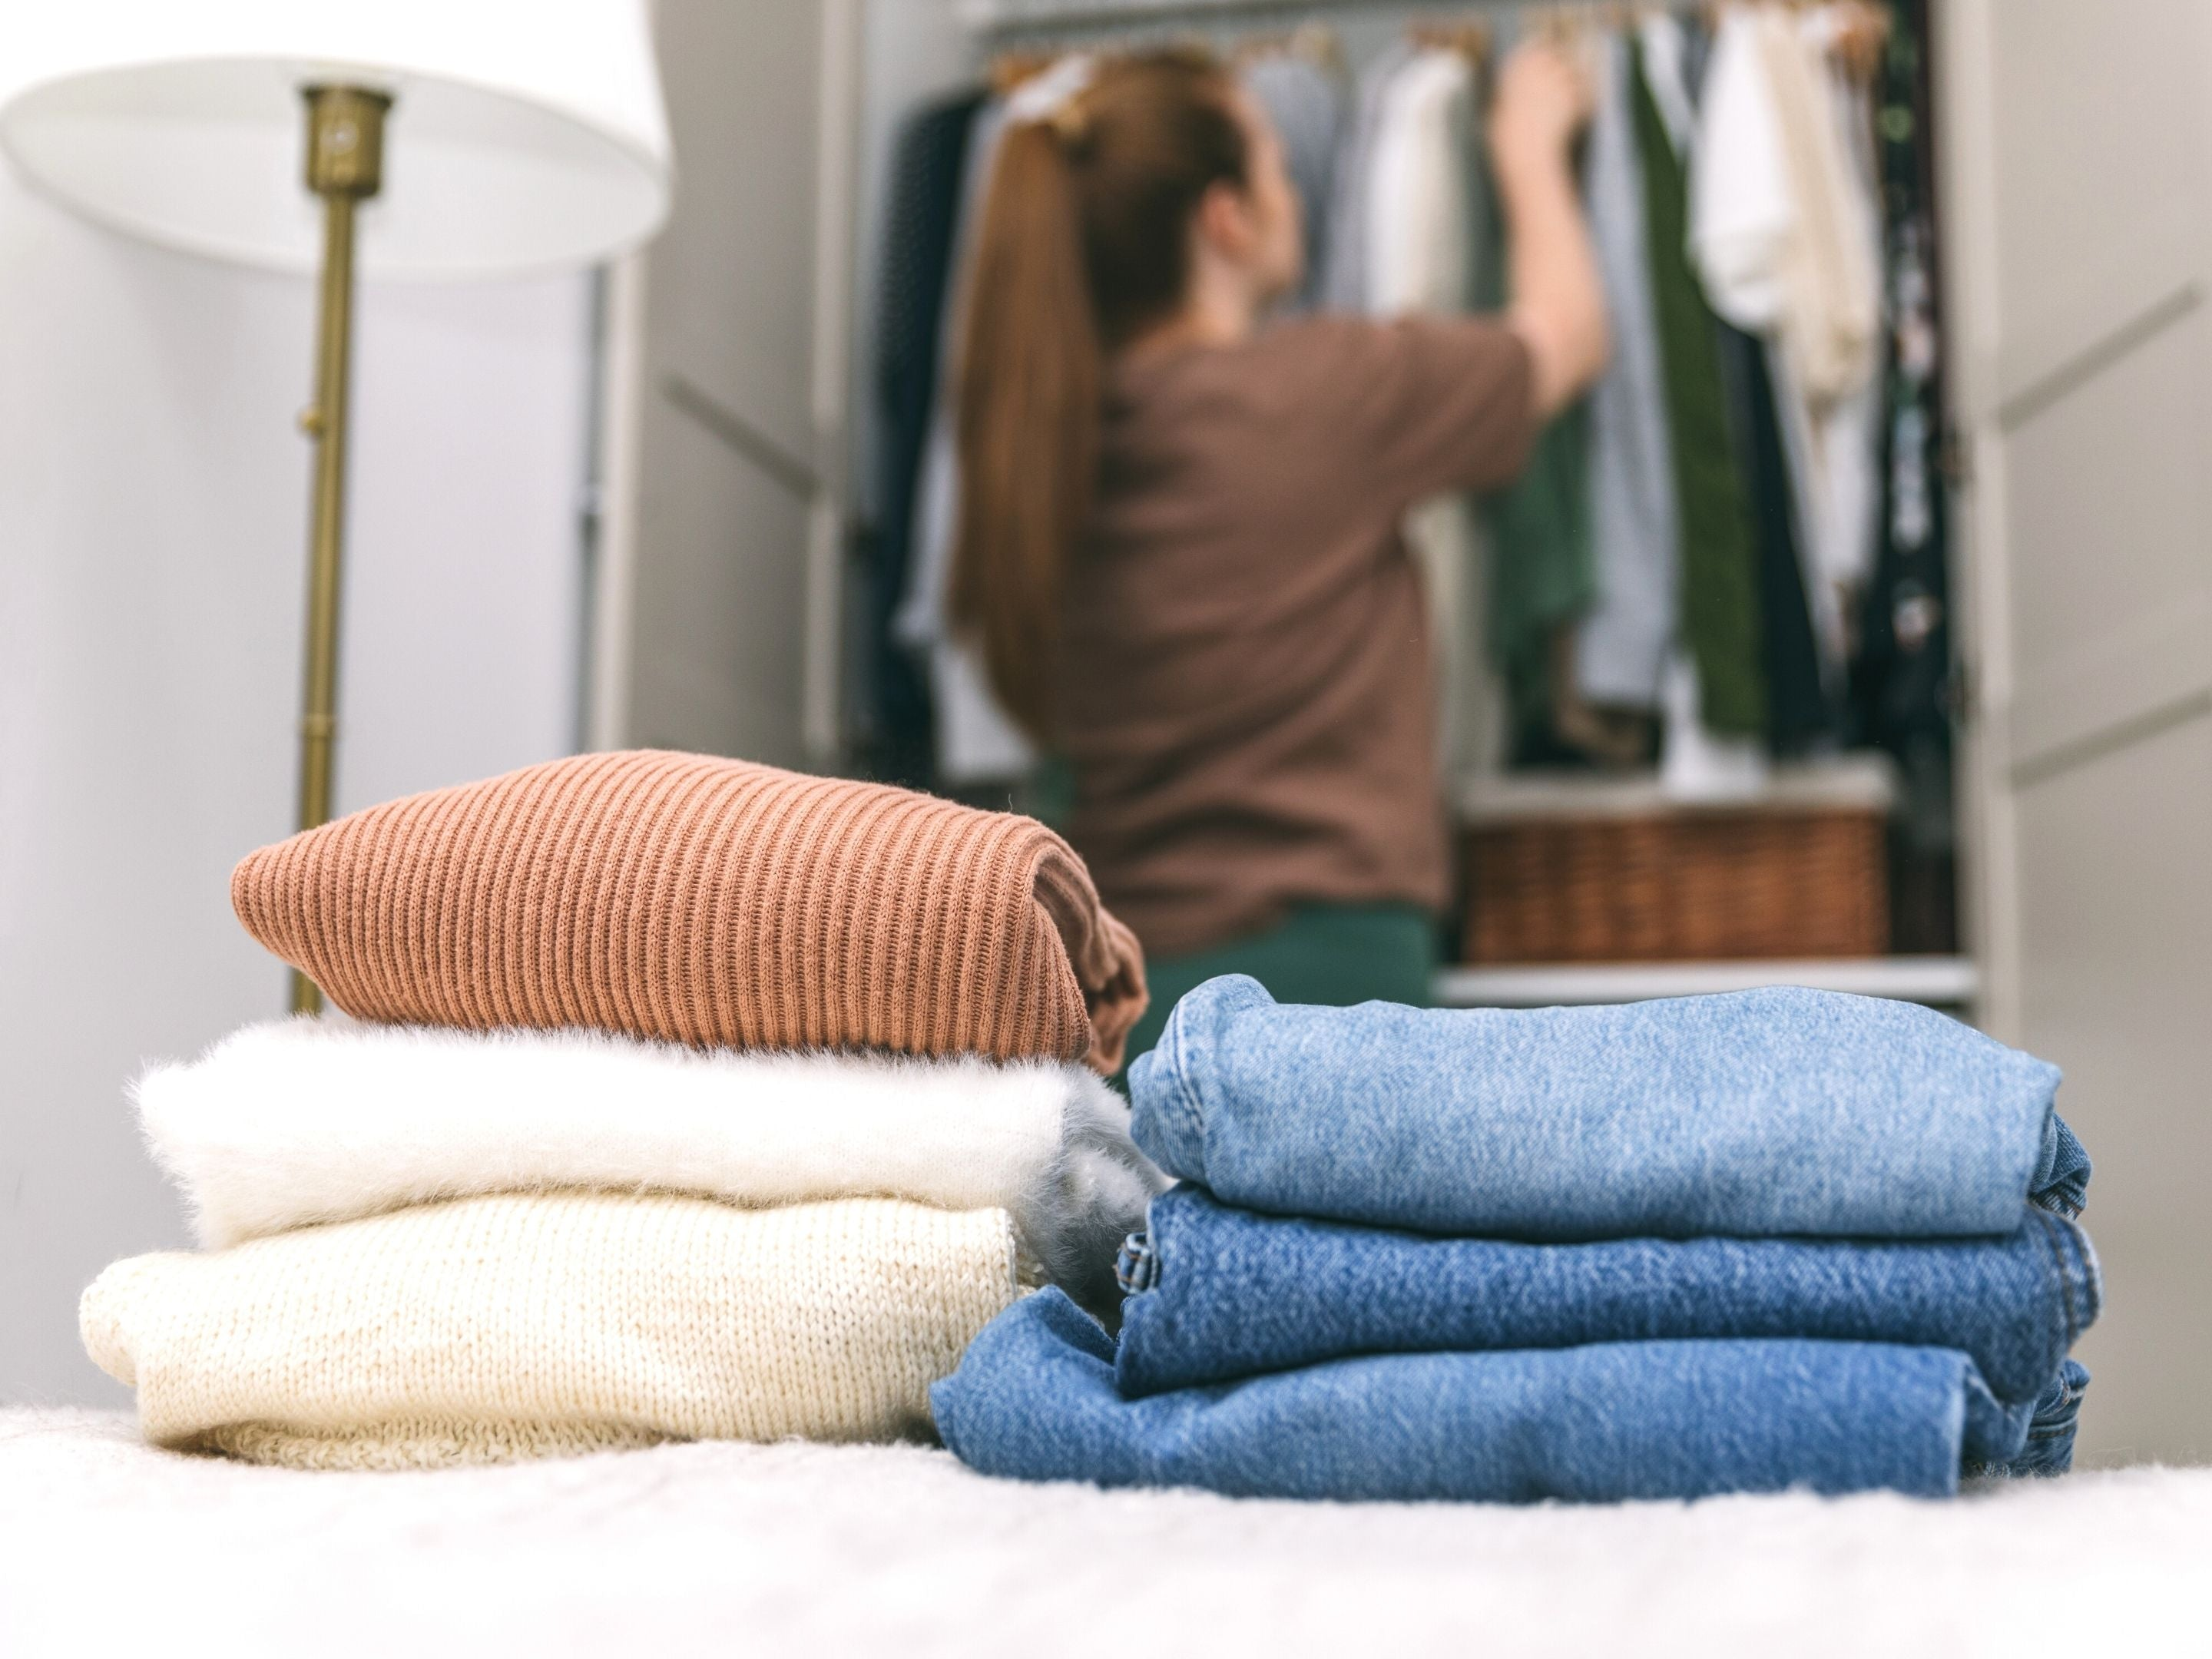 Folded Garments and Woman Hanging Clothes in Closet